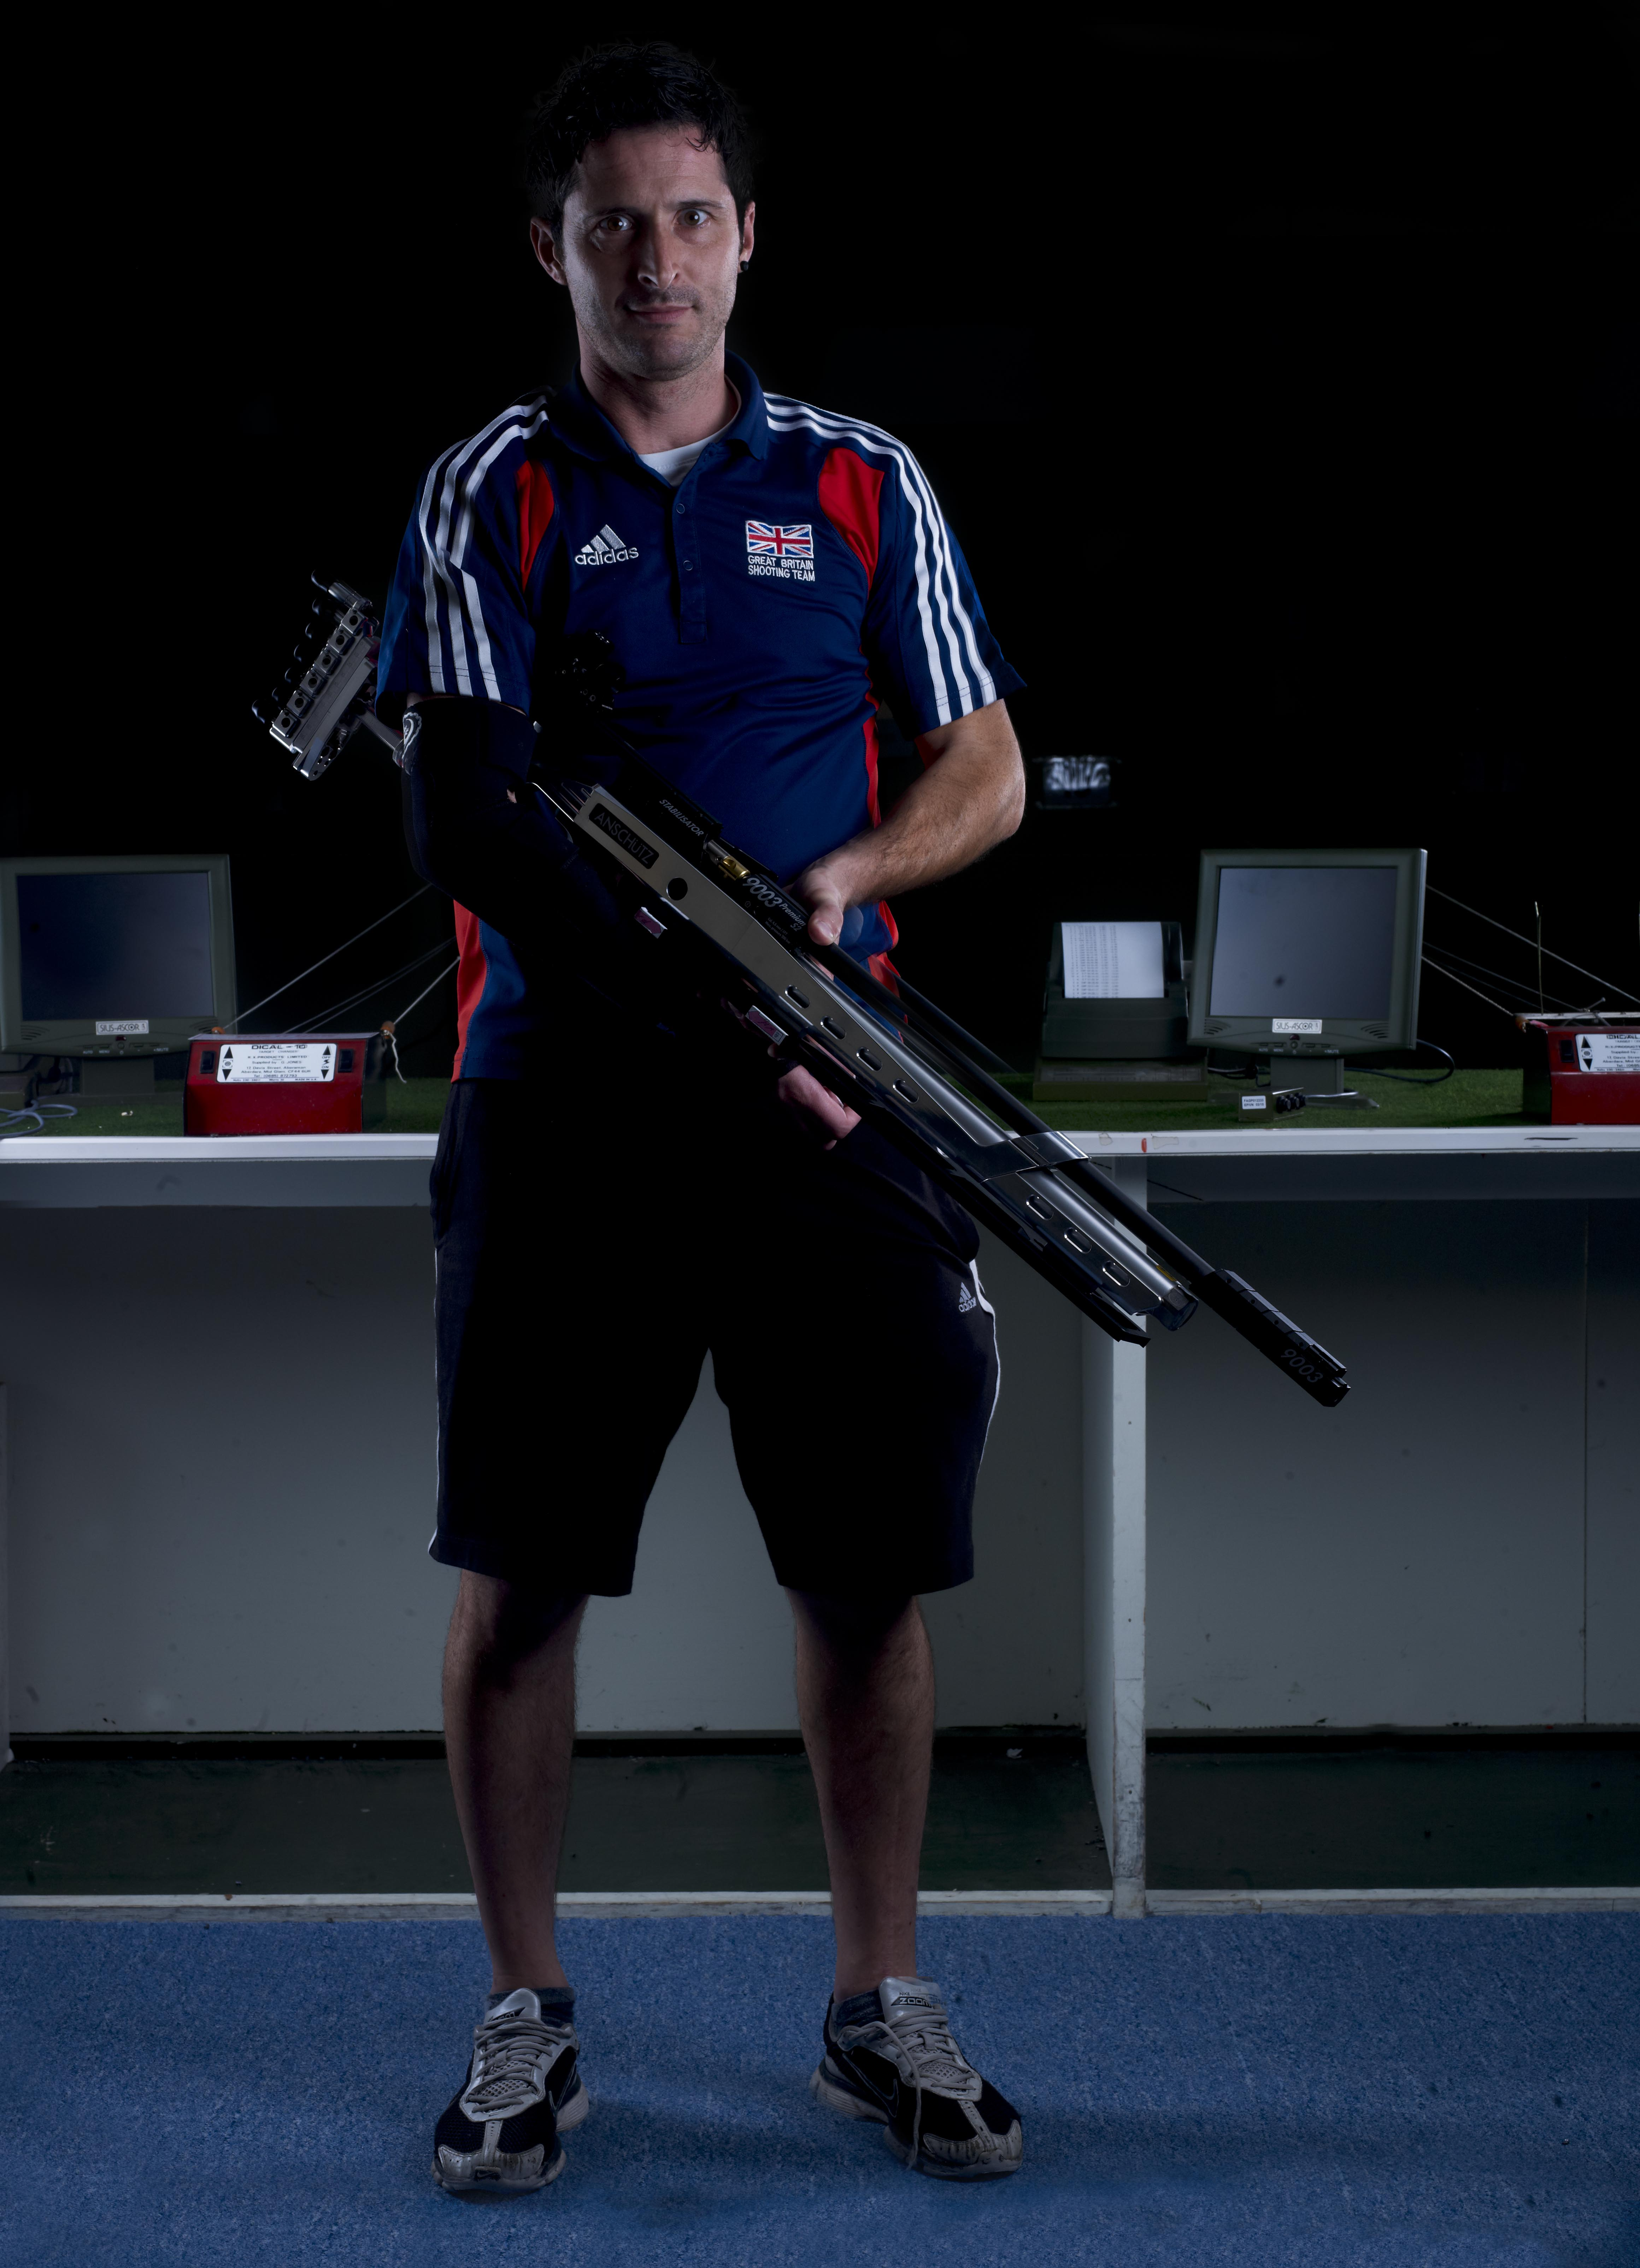 Stoke Mandeville Stadium is home to the IPC Shooting World Cup